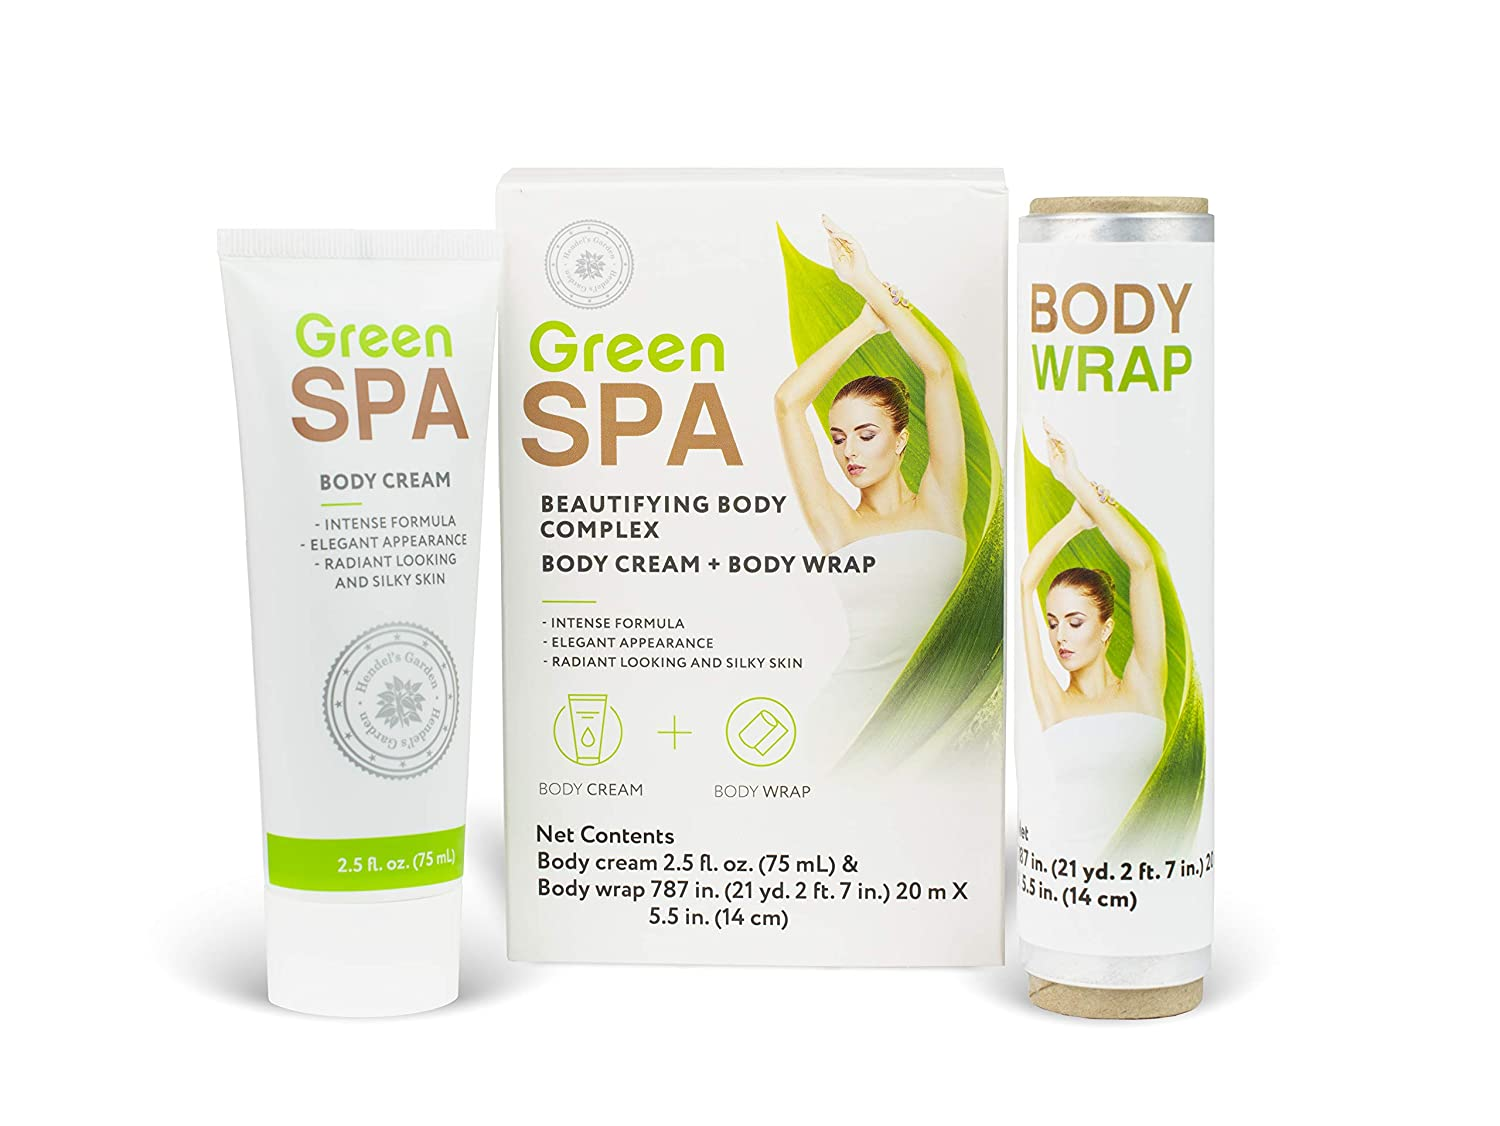 Detox Stomach Wraps for Weight Loss, Body Wrap to Get Skinny - Slimming Spa Treatment for Cellulite, Weight Loss and Contouring, Belly Wrap to Get Rid of Belly Fat - Body Cream & Body Wrap By Hendel